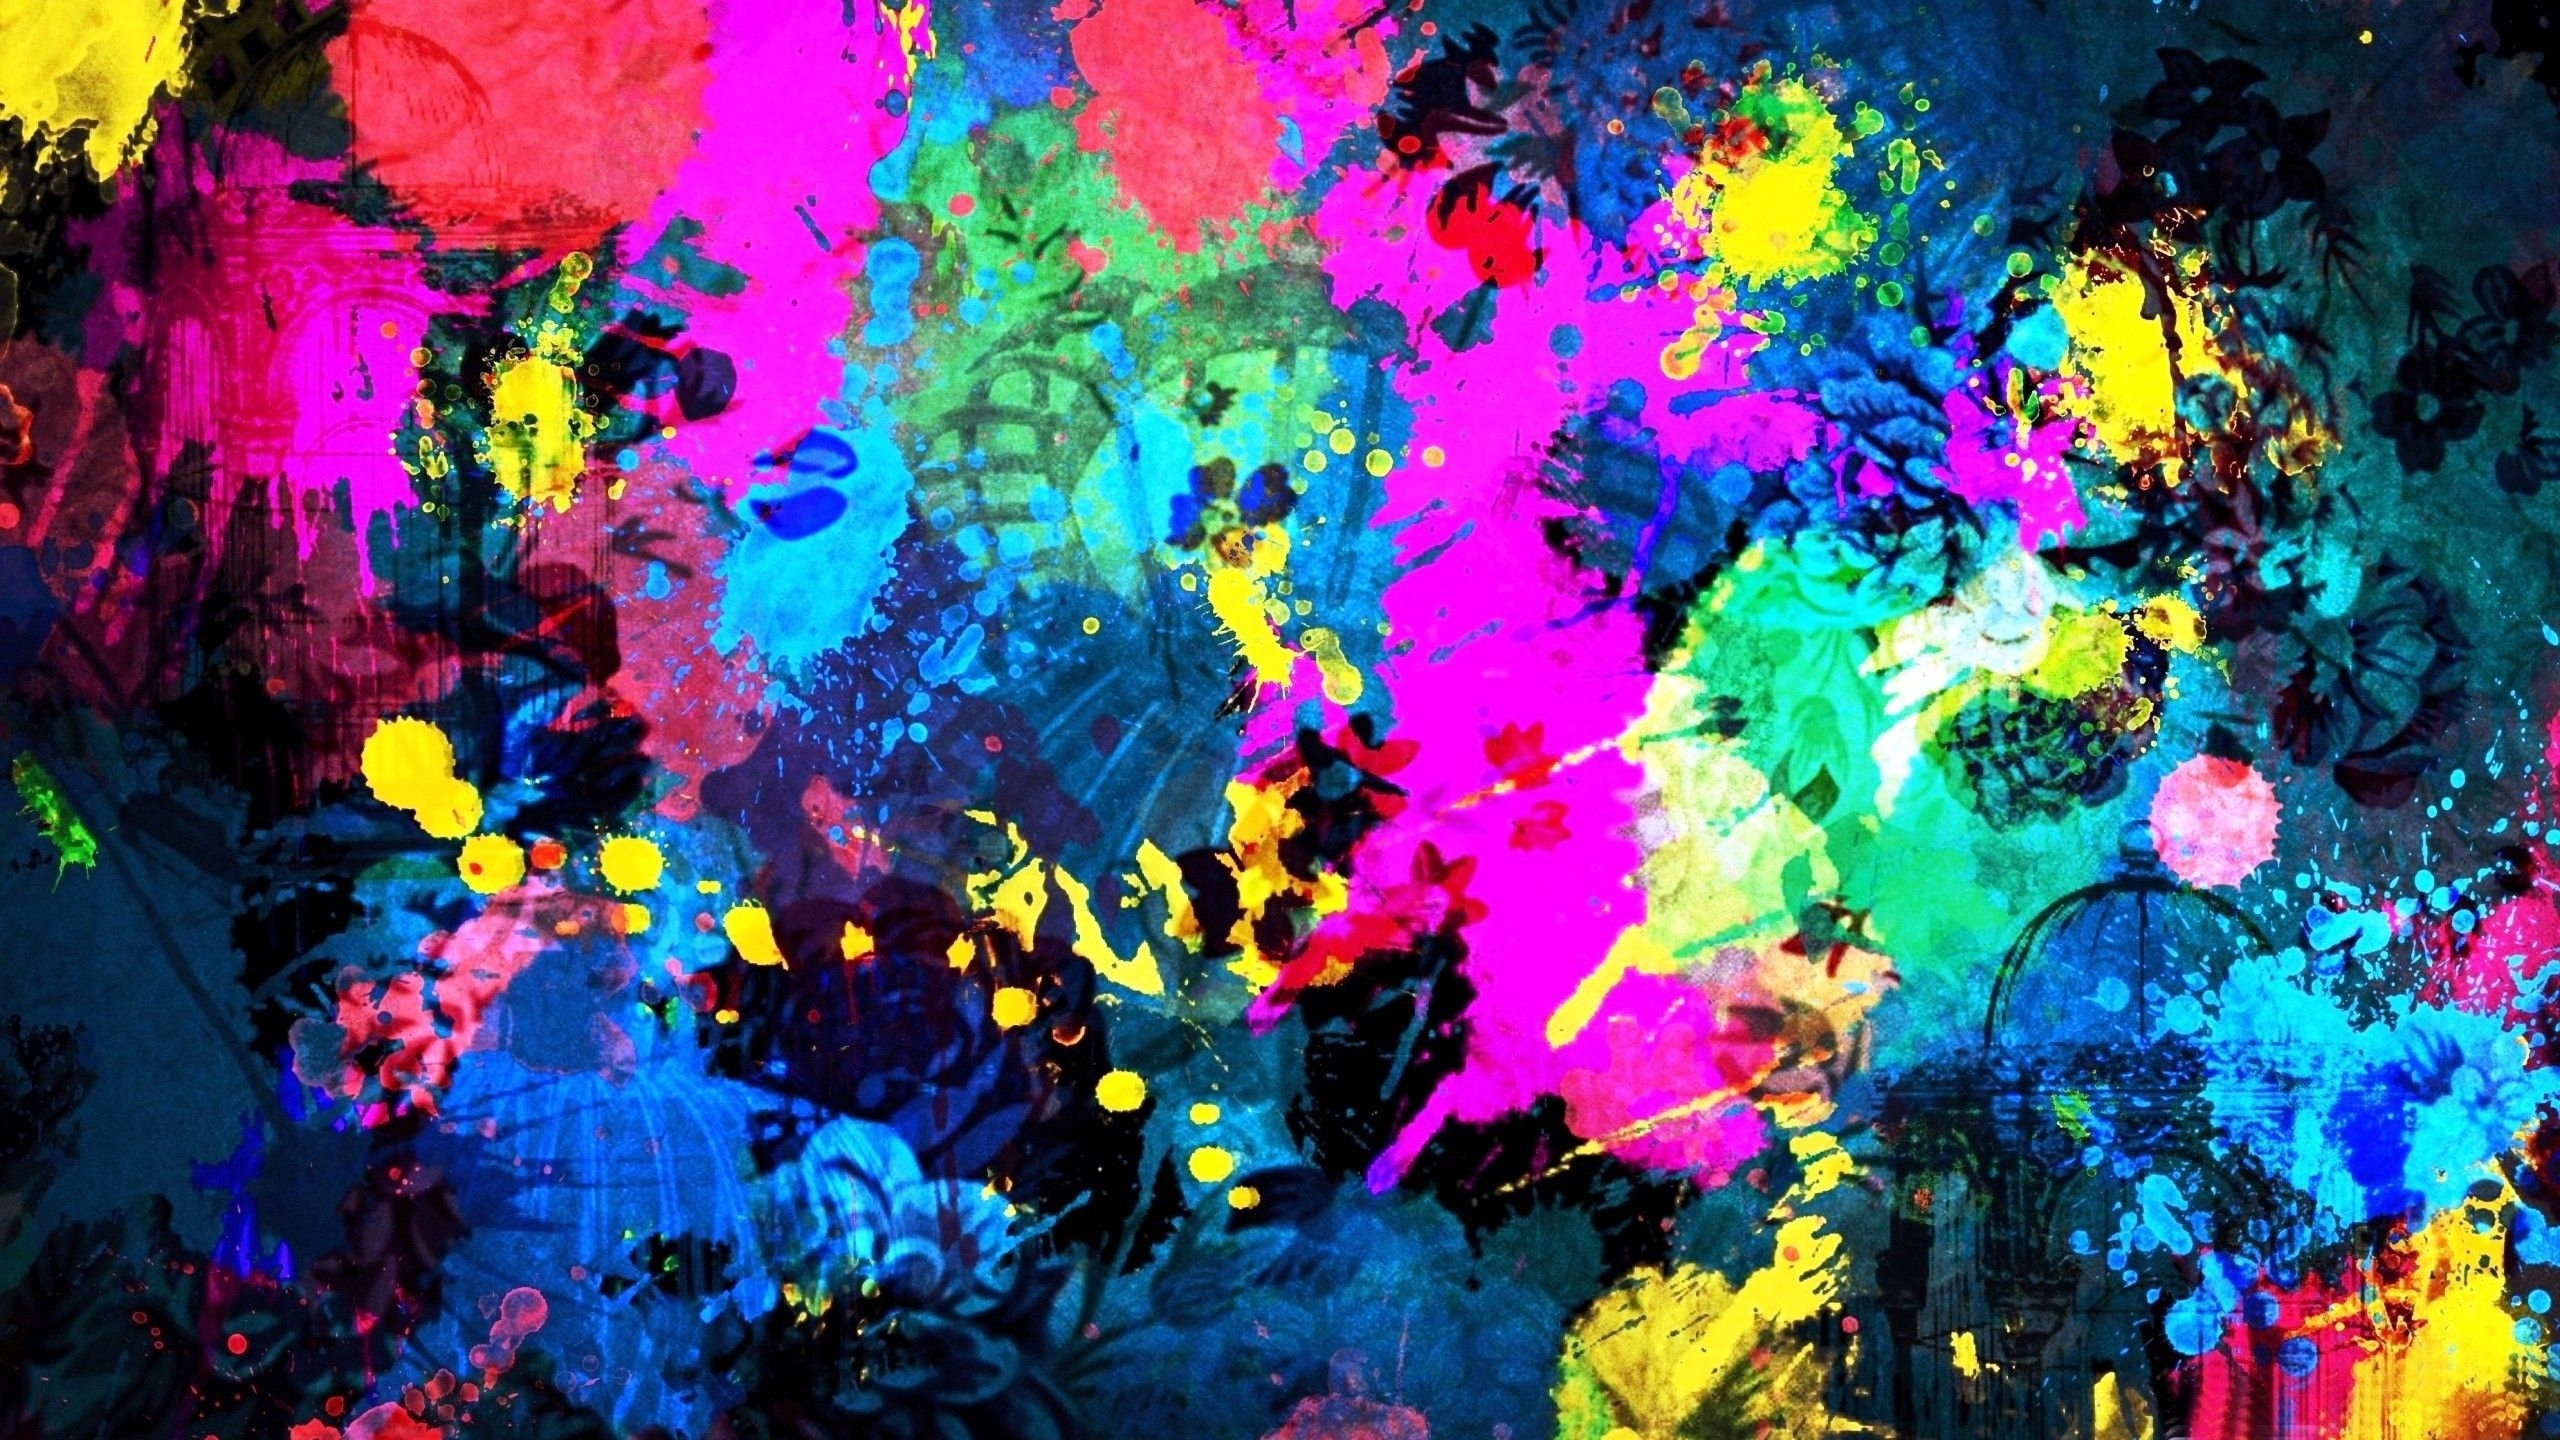 artistic abstract wallpapers high quality resolution | abstract